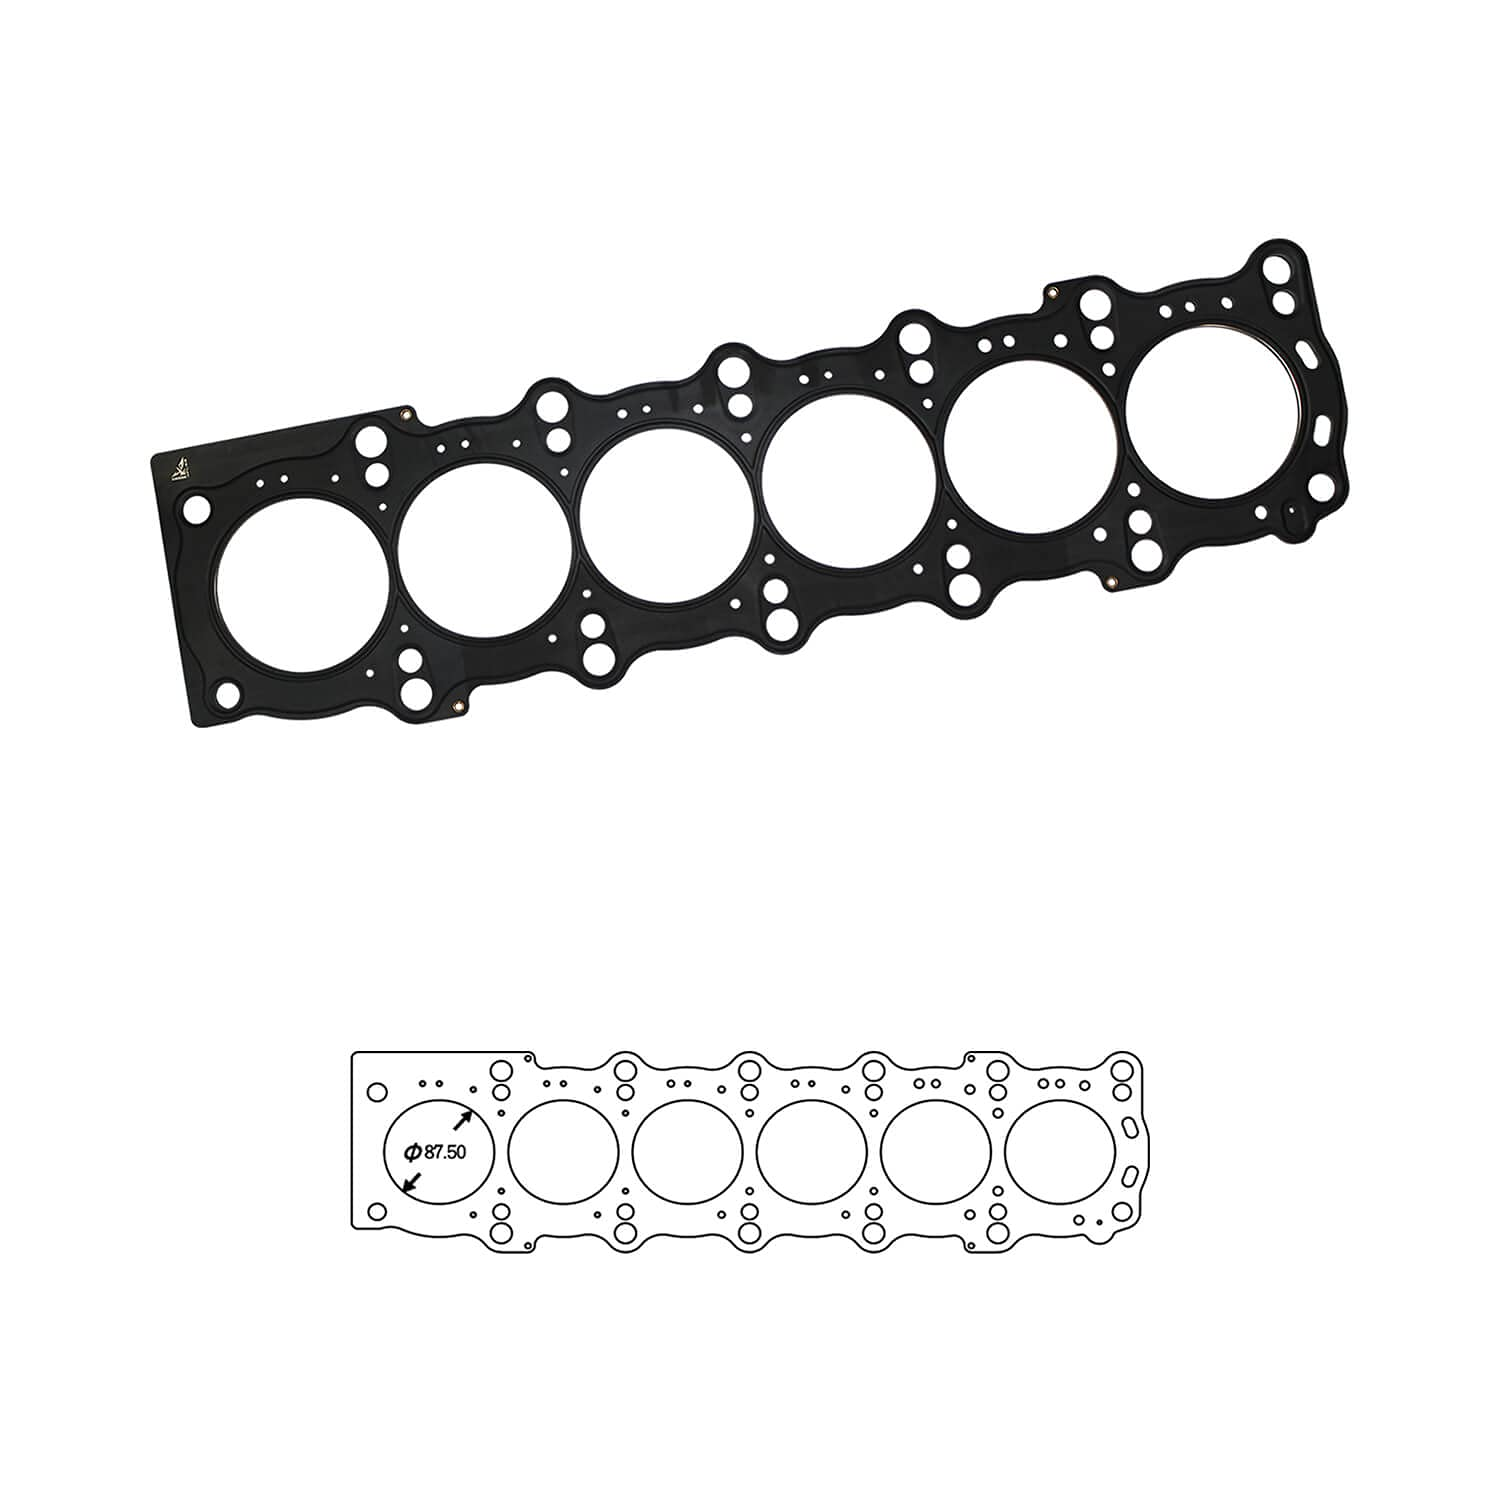 Siruda Cylinder Head Indefinitely Gasket Corrosion-Resistant Ranking TOP11 Multi-Layer with